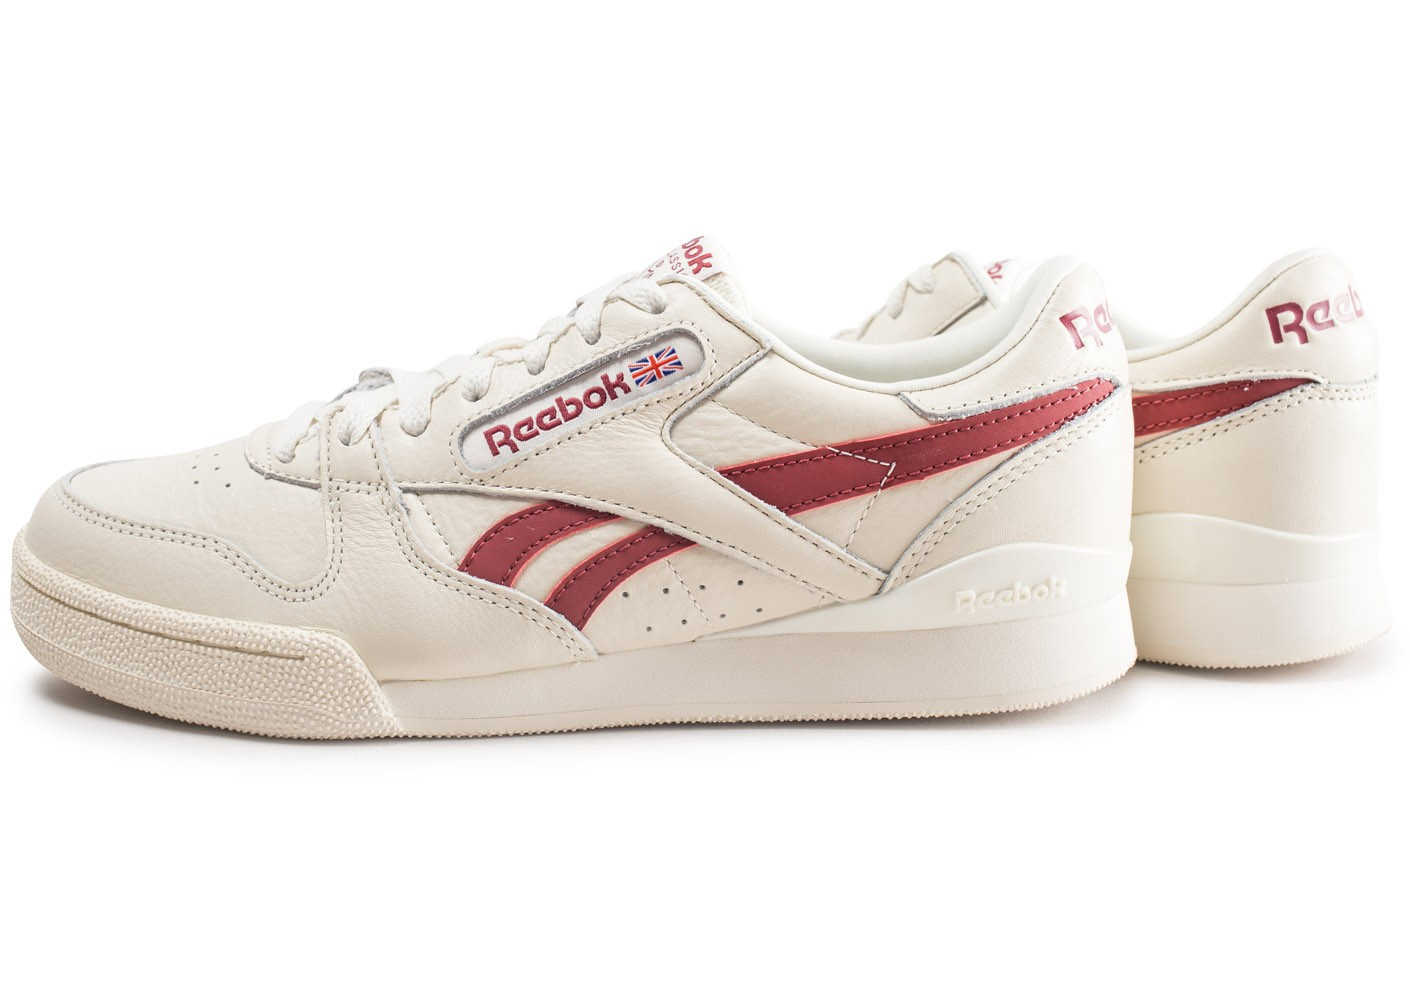 Reebok Phase 1 Pro blanche et rouge Chaussures Baskets